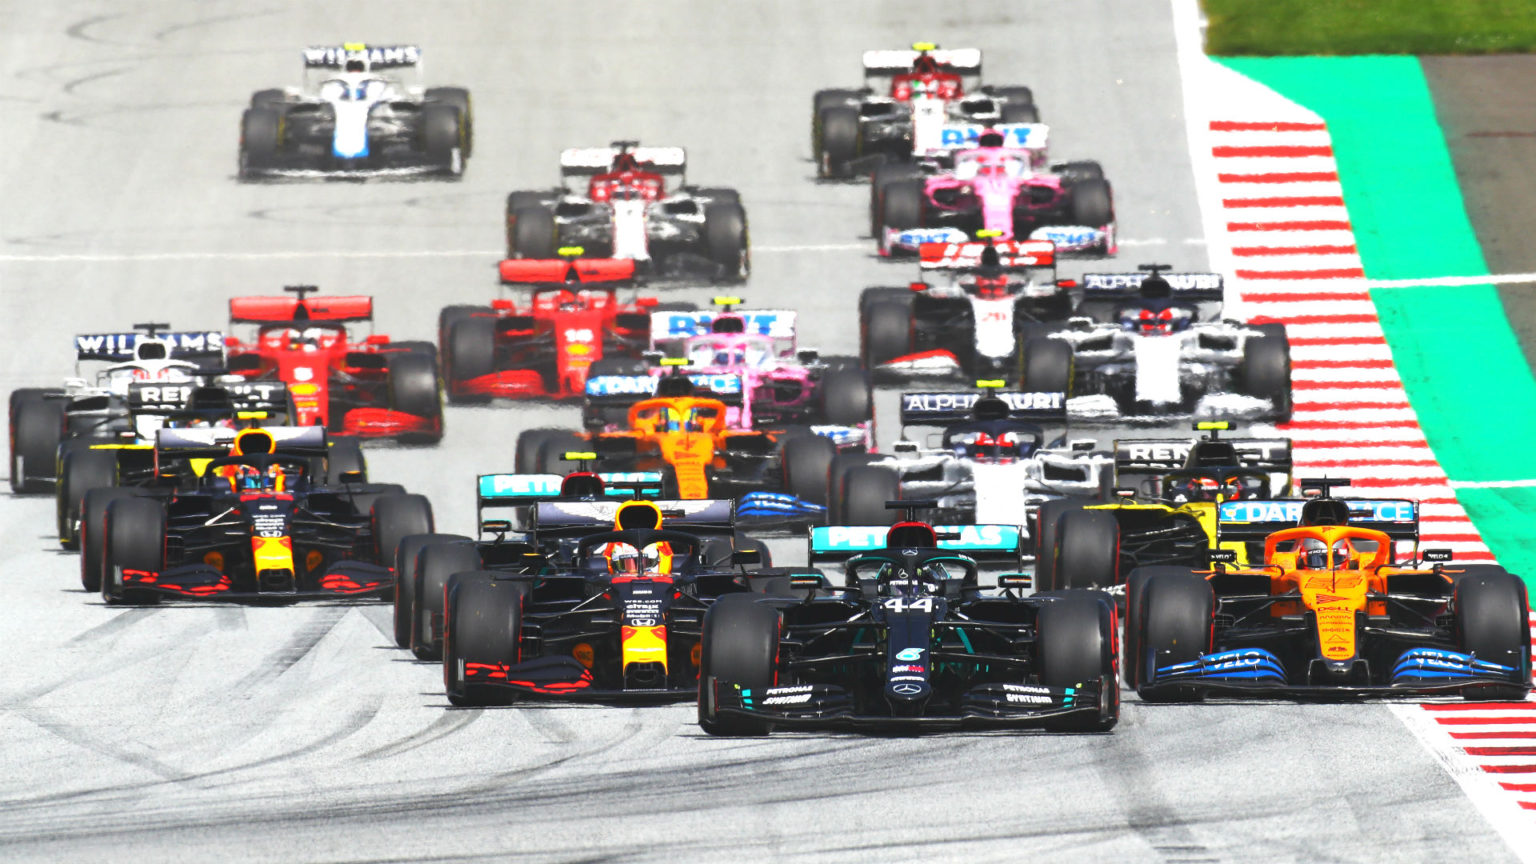 The 2020 British Grand Prix at Silverstone. Silverstone was paid by Liberty Media to host the event due to coronavirus.